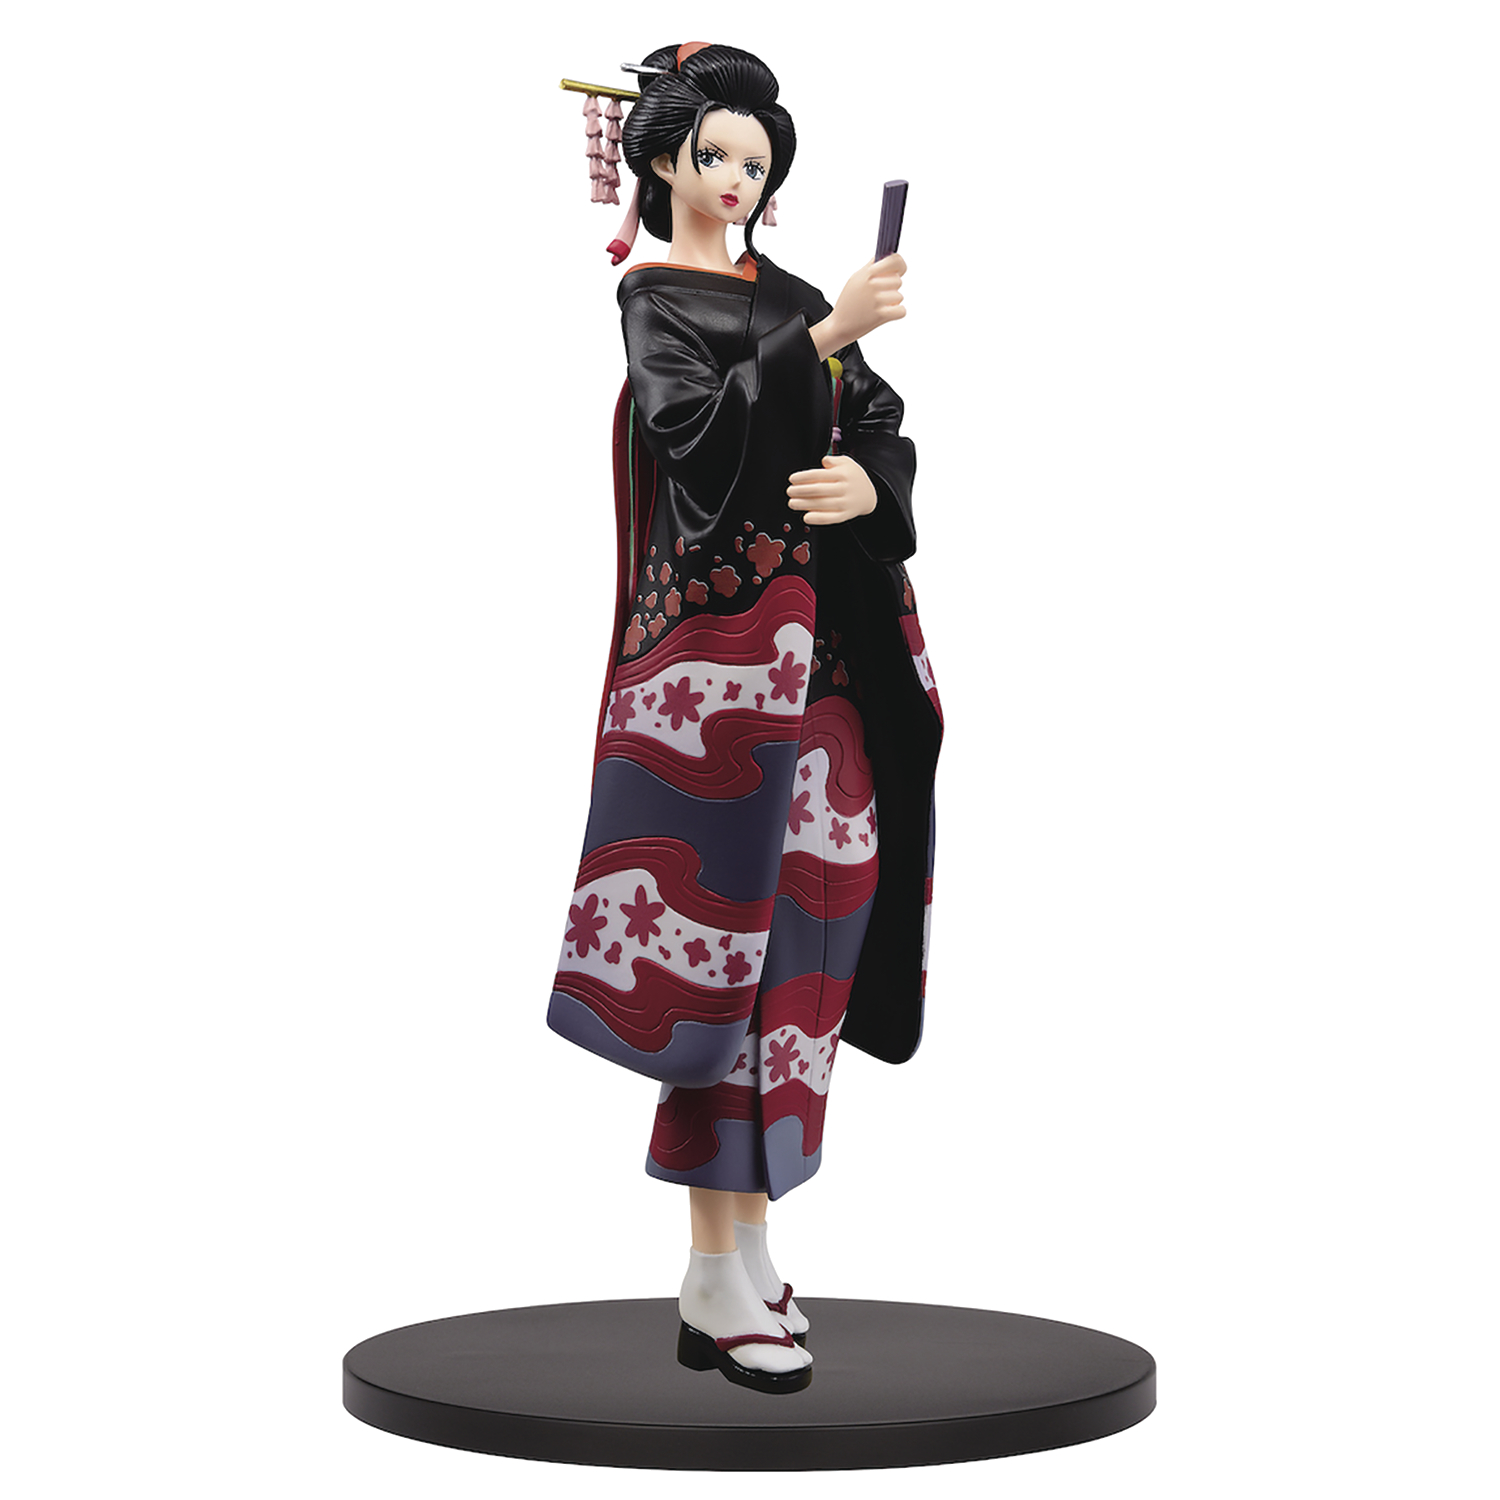 ONE PIECE GRANDLINE LADY WANO COUNTRY V2 NICO ROBIN DXF FIG